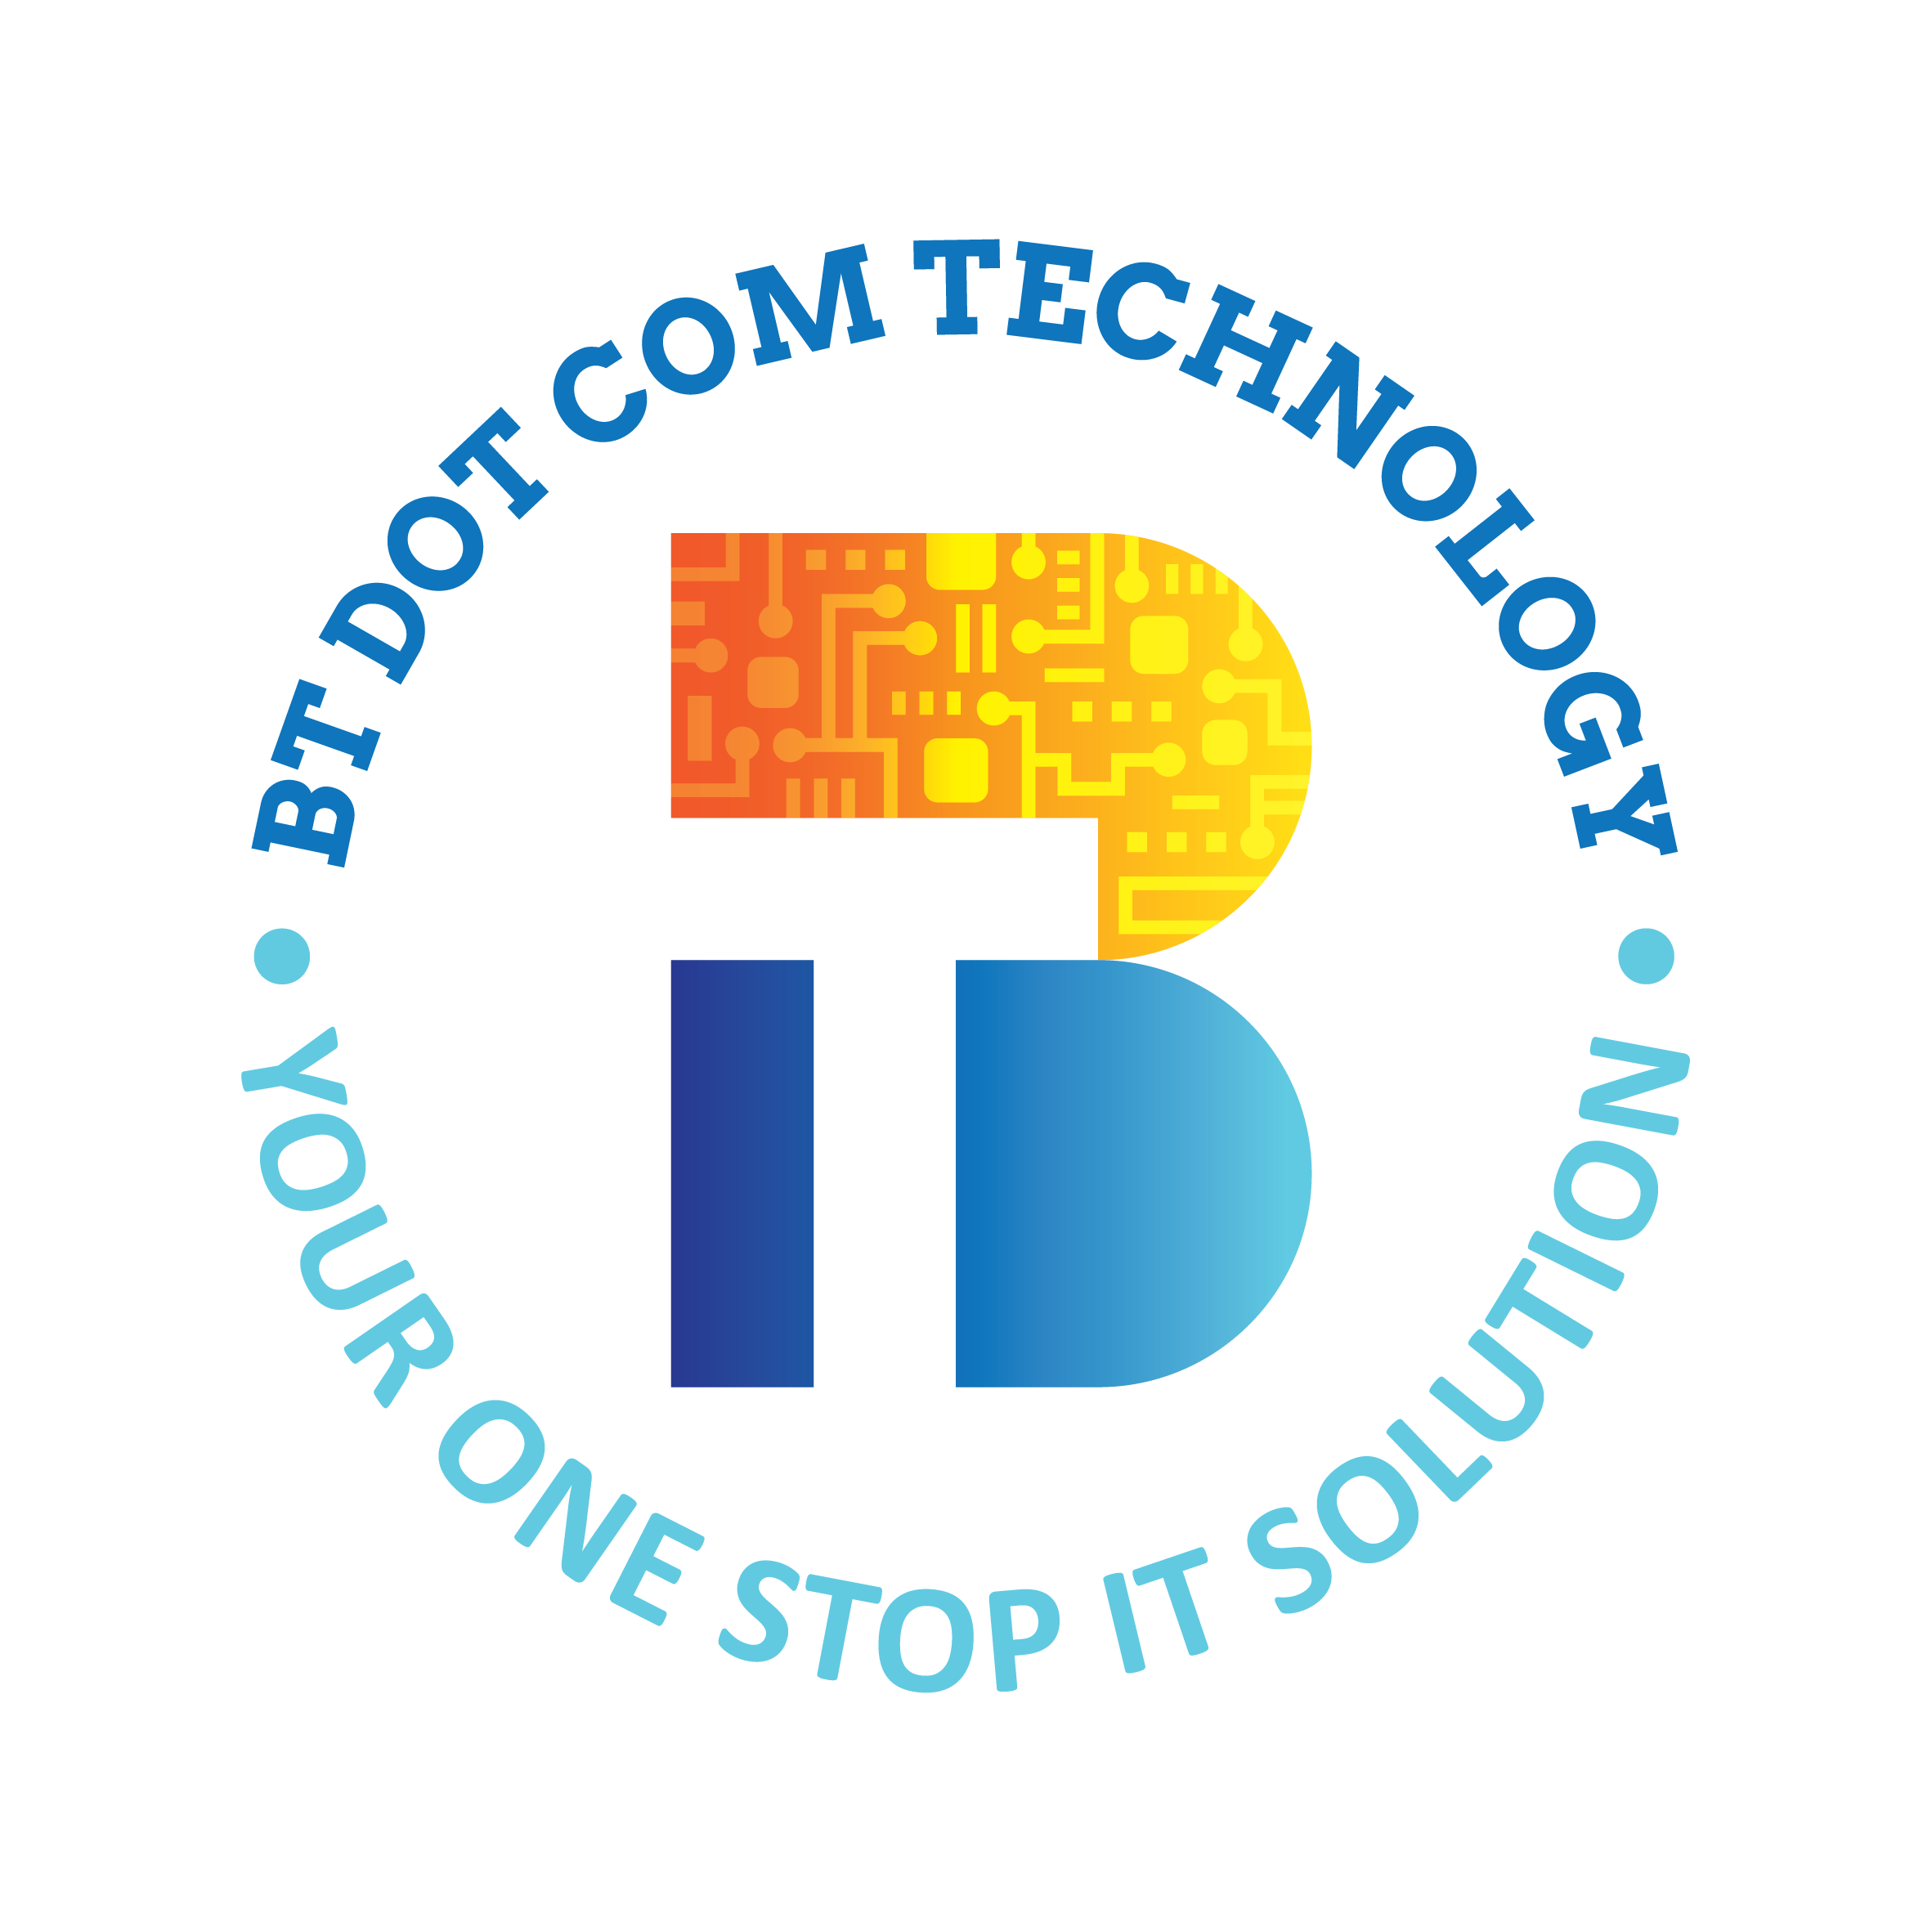 BT DOT COM TECHNOLOGY